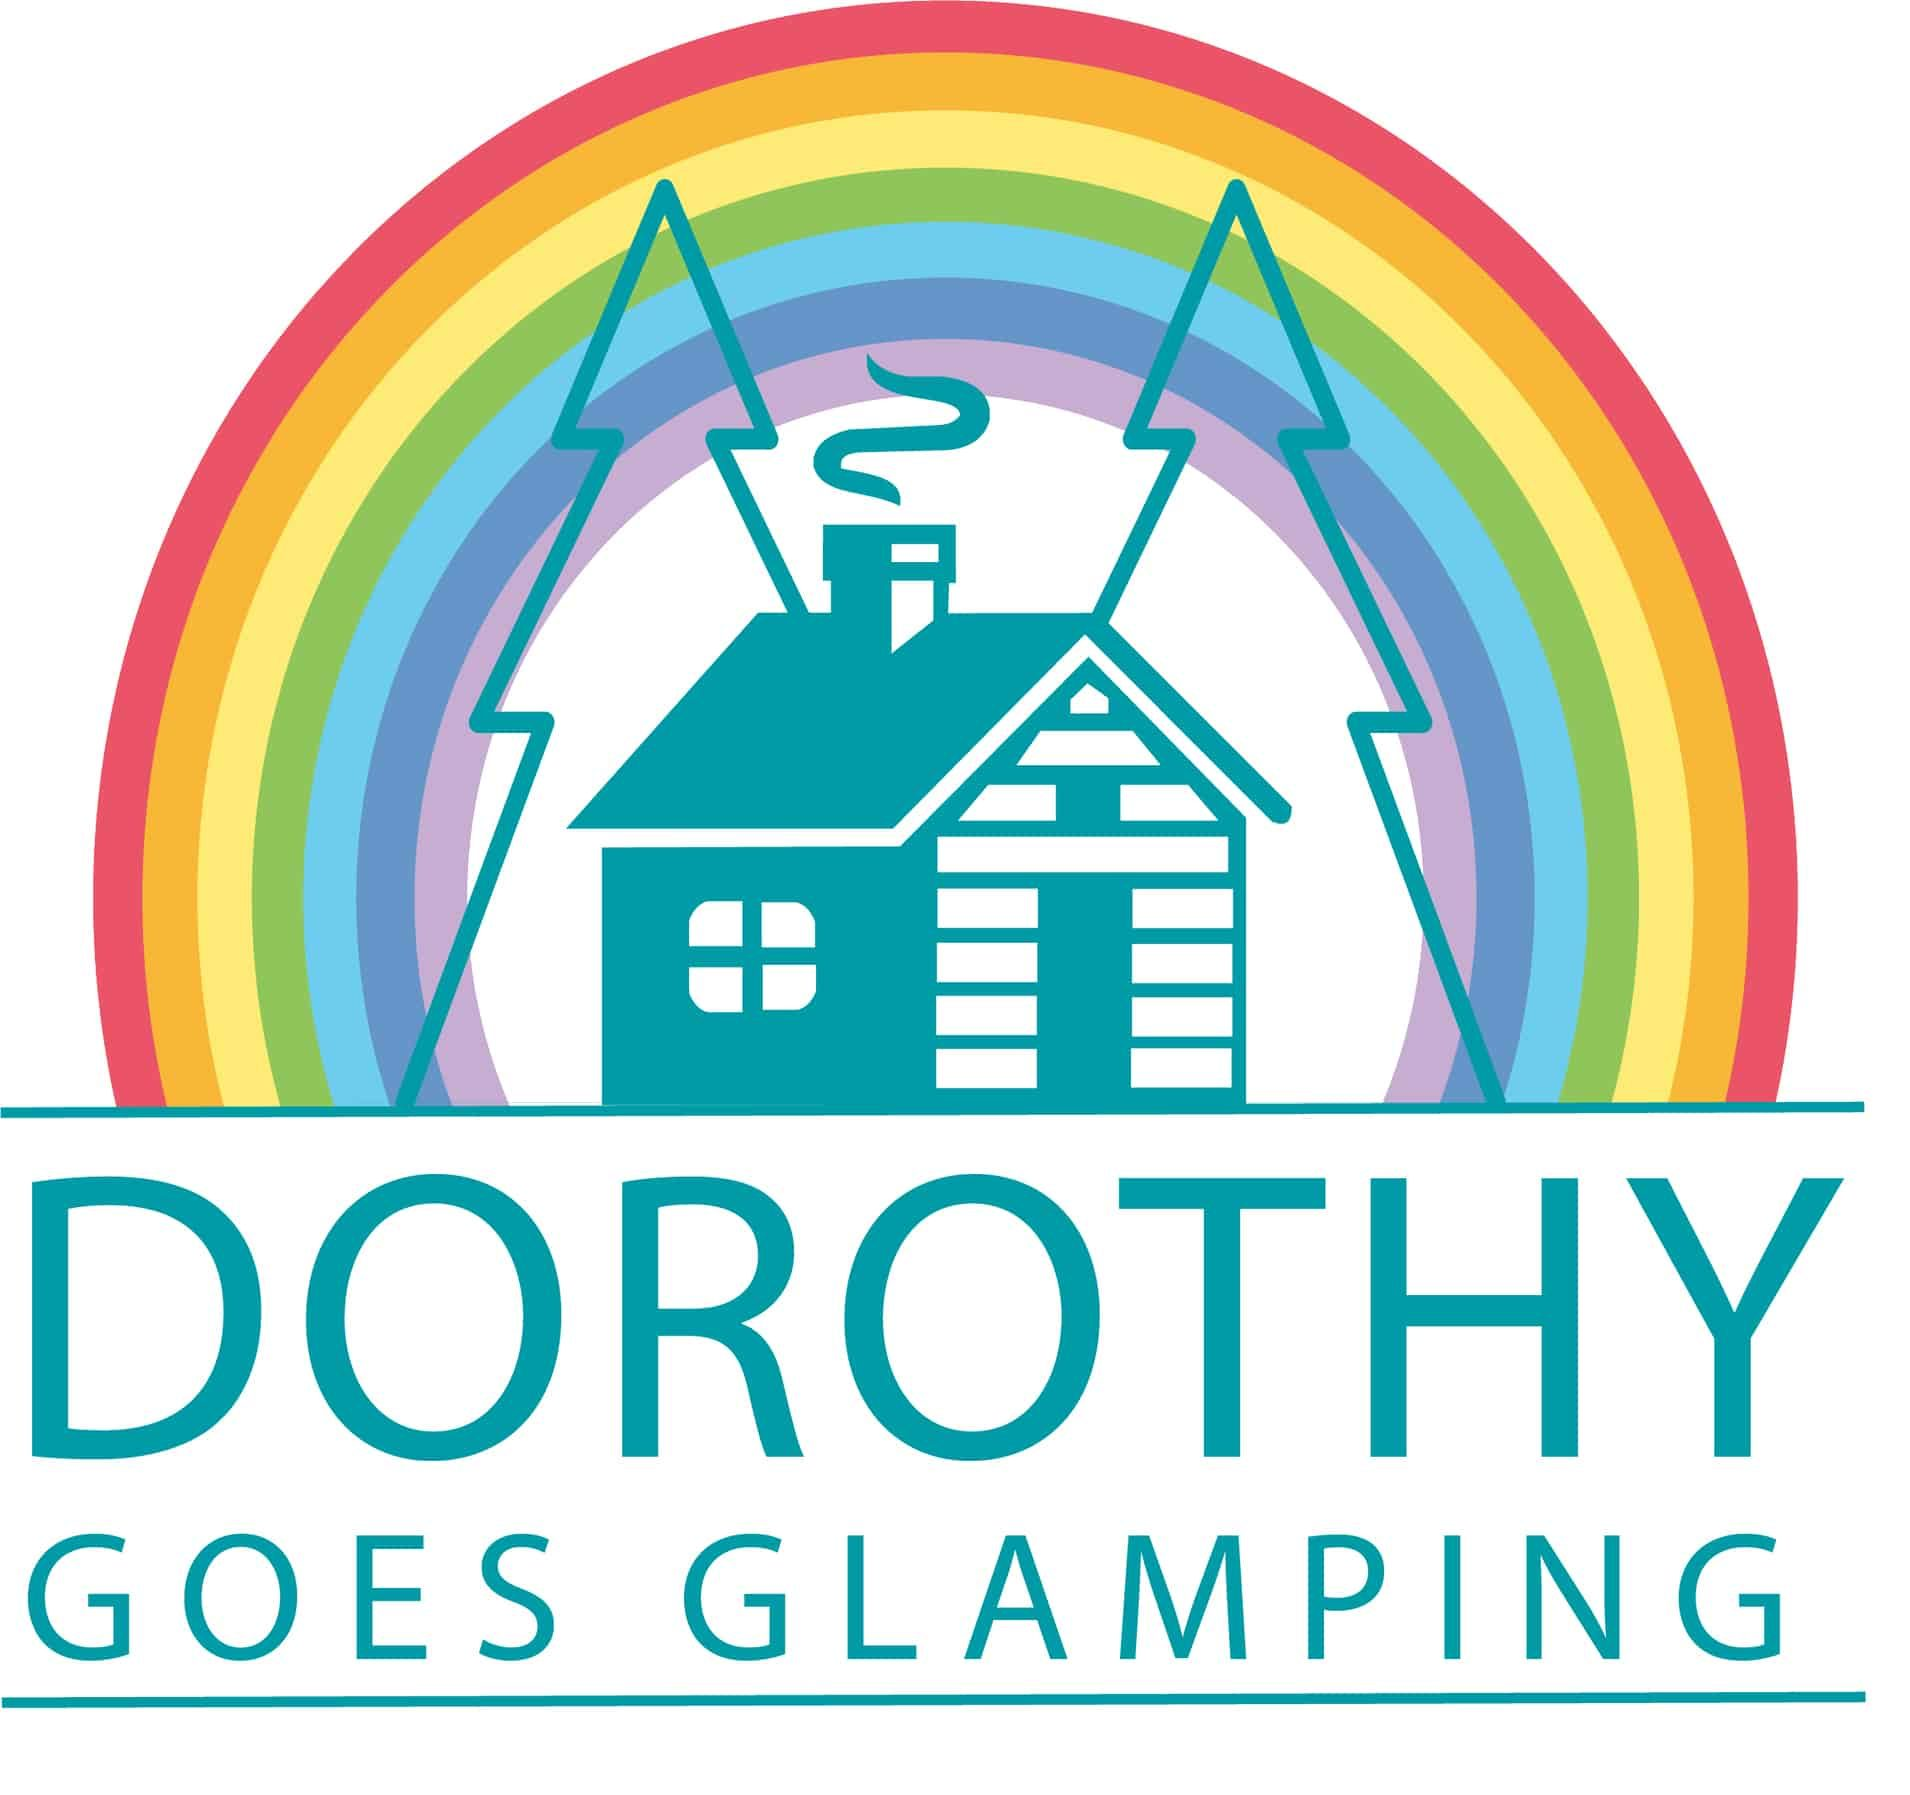 Dorothy Goes Glamping